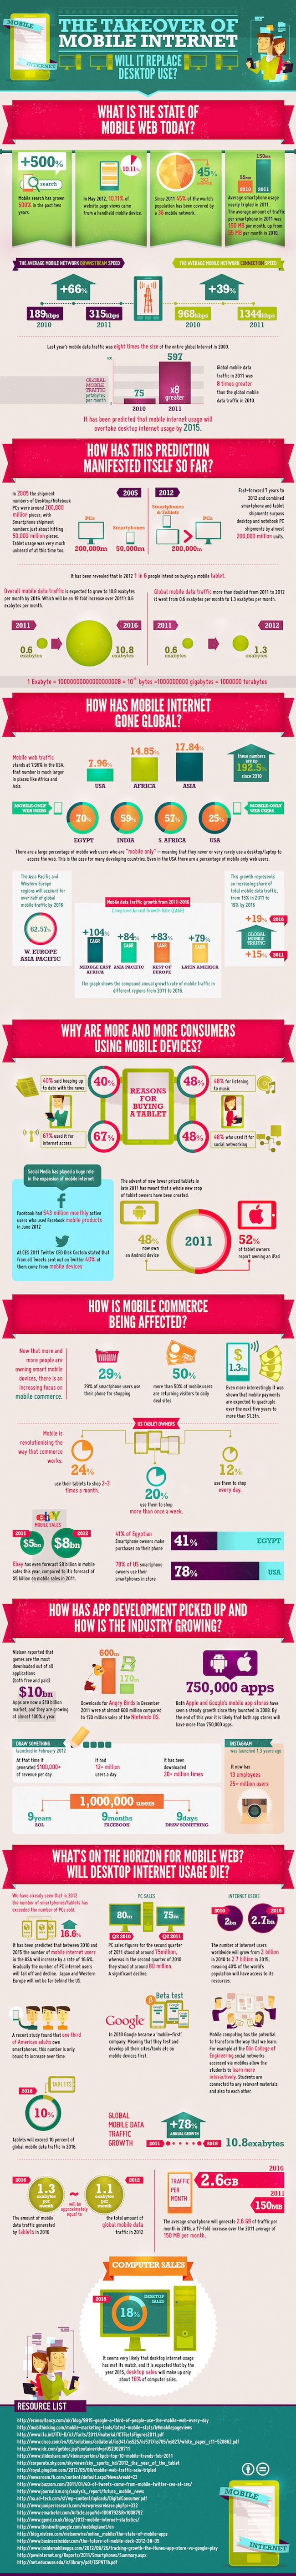 Will mobile internet replace desktop? [infographic] | Econsultancy